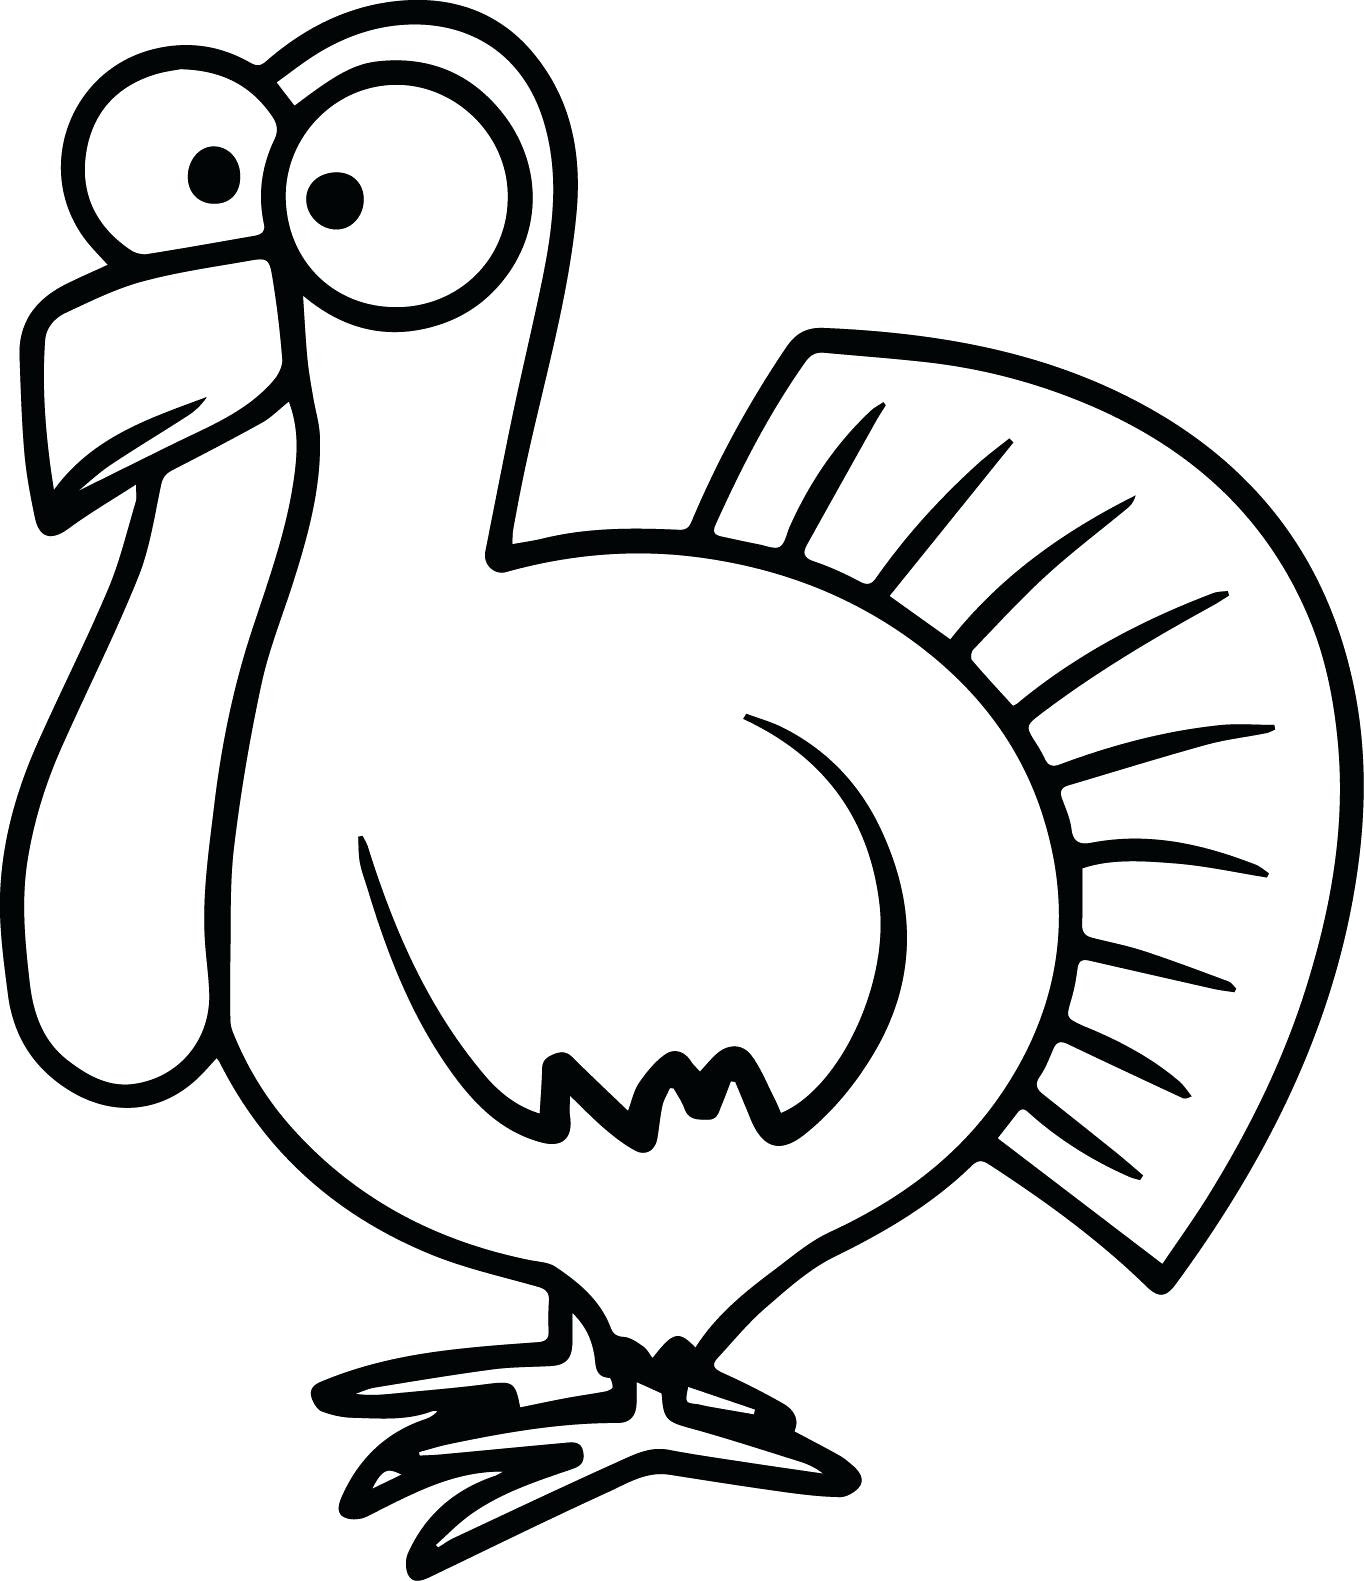 Free Turkey Clipart Black And White | Free download on ...